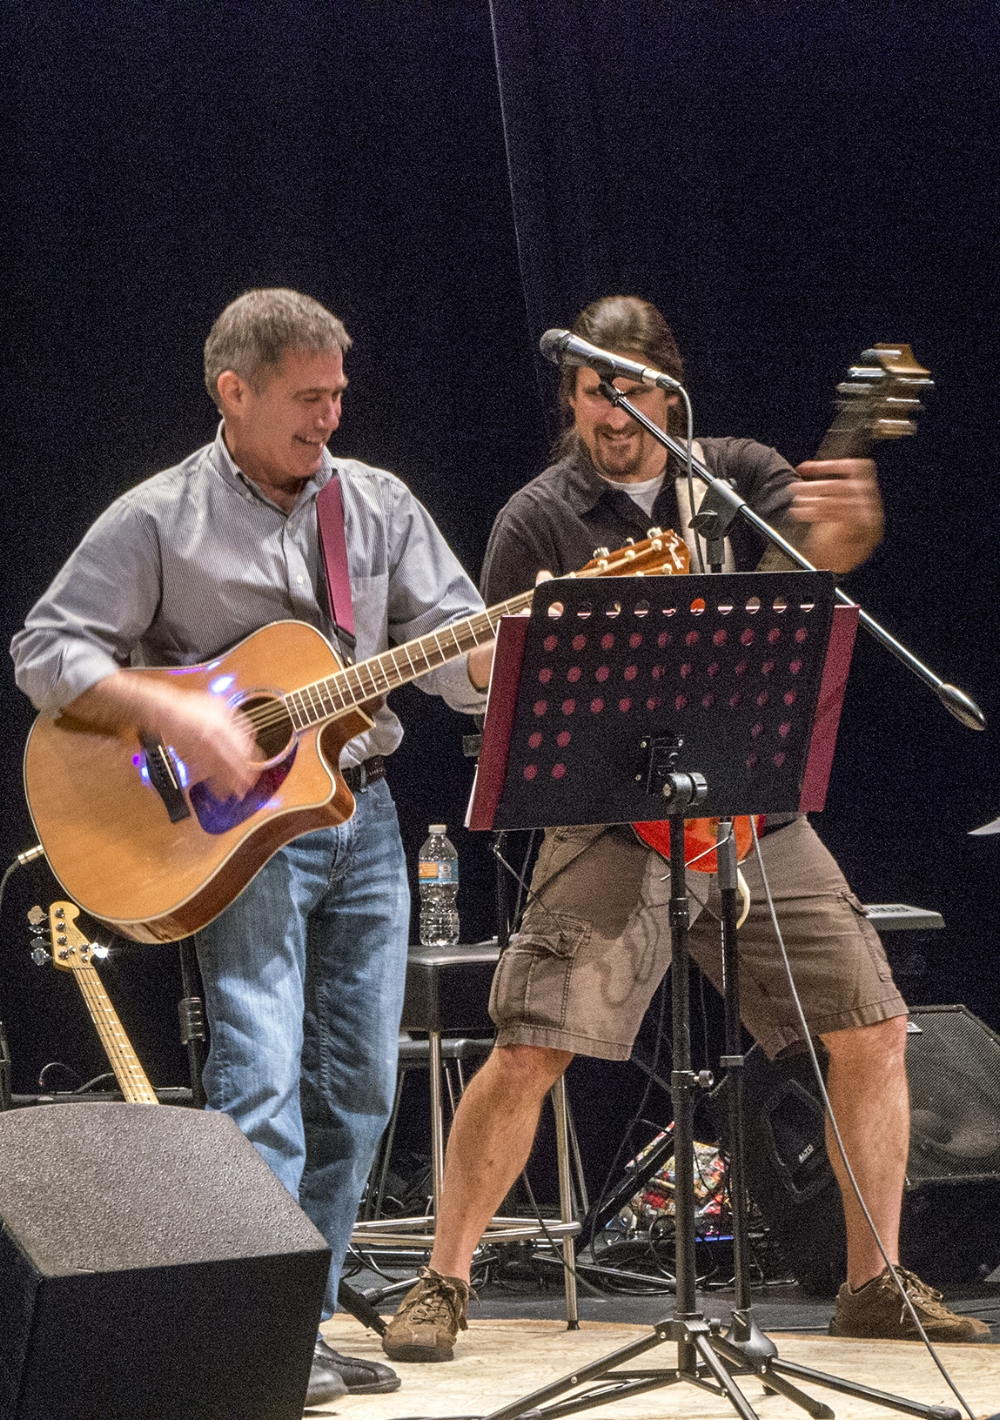 Photo By Tom Brenner  Victor Hogg and I playing at A Musical Concert   Voices Of War   at Housatonic Community College in the fall of 2016. One of the perks of my job is to have the opportunity to perform on stage with some very talented musicians. Click the image to connect to a video clip for a rehearsal for a Warren Zevon Tribute Concert from 2013.